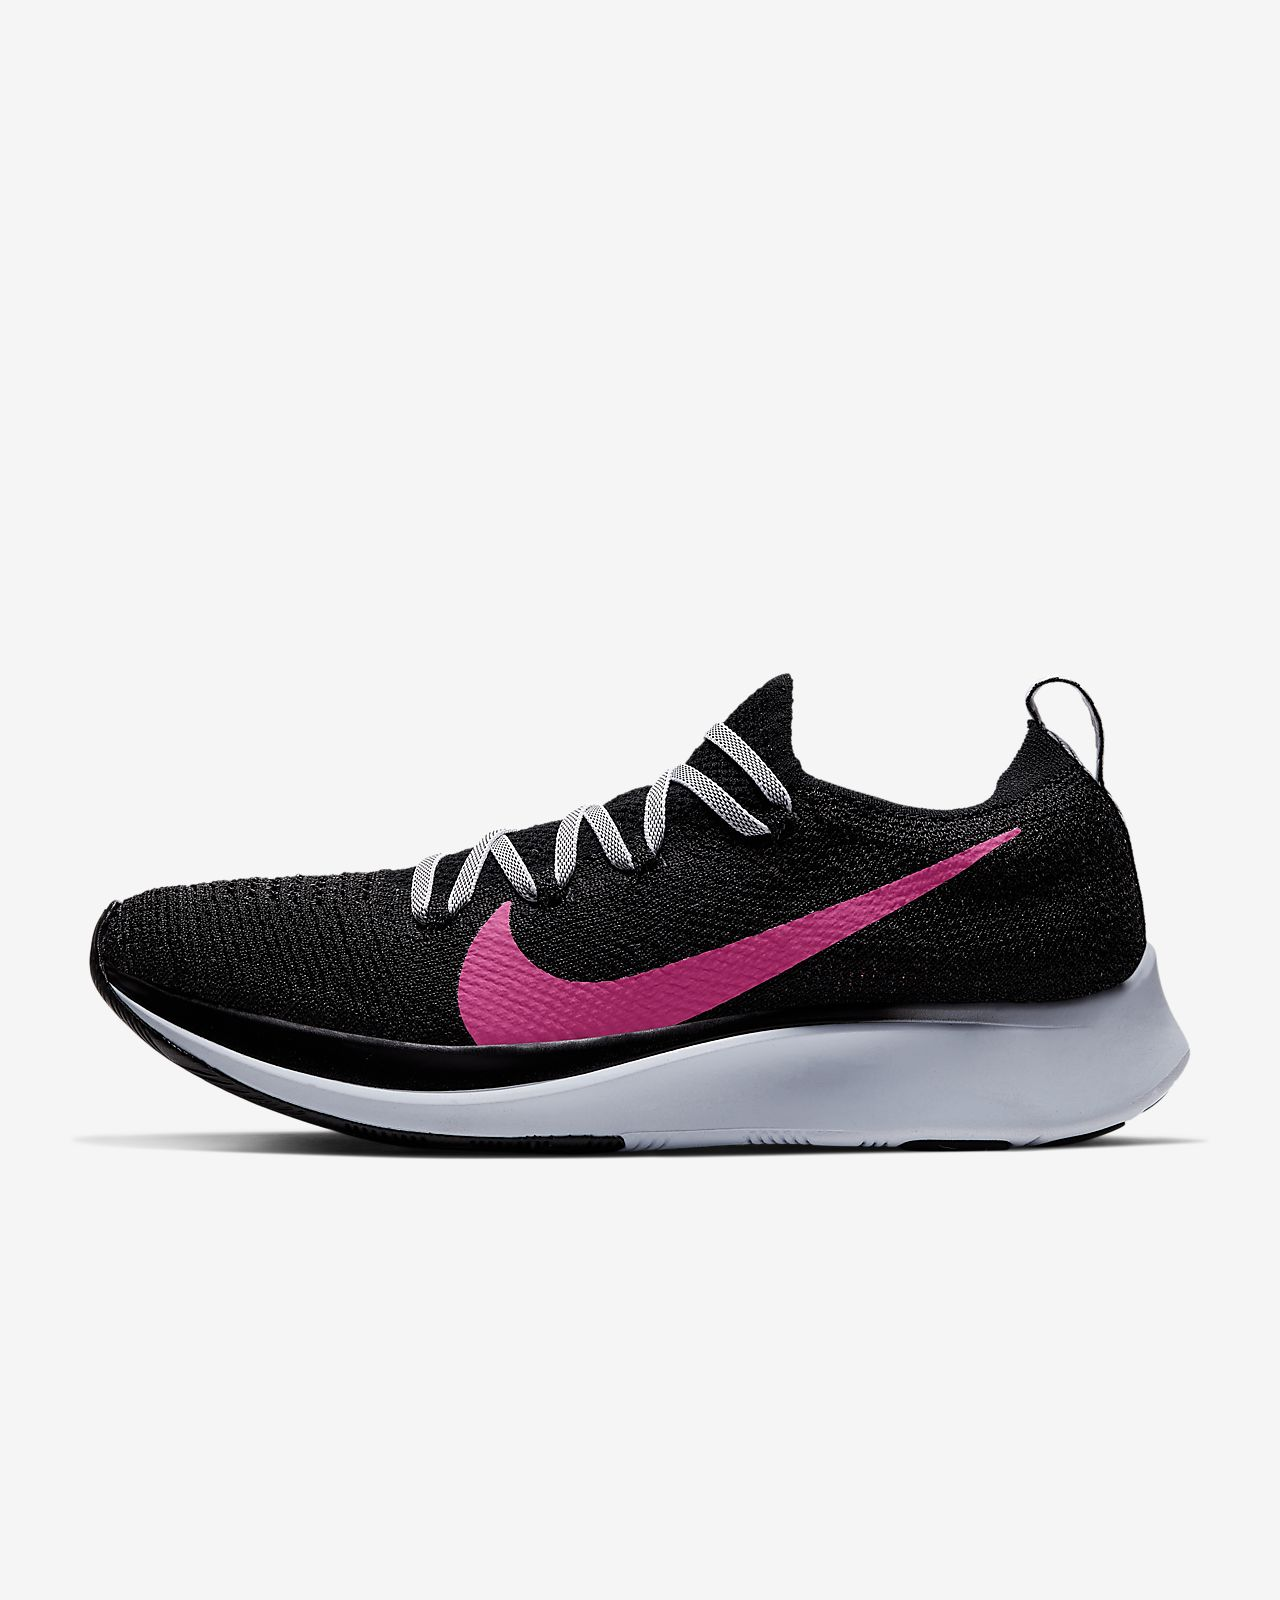 Sapatilhas de running Nike Zoom Fly Flyknit para mulher